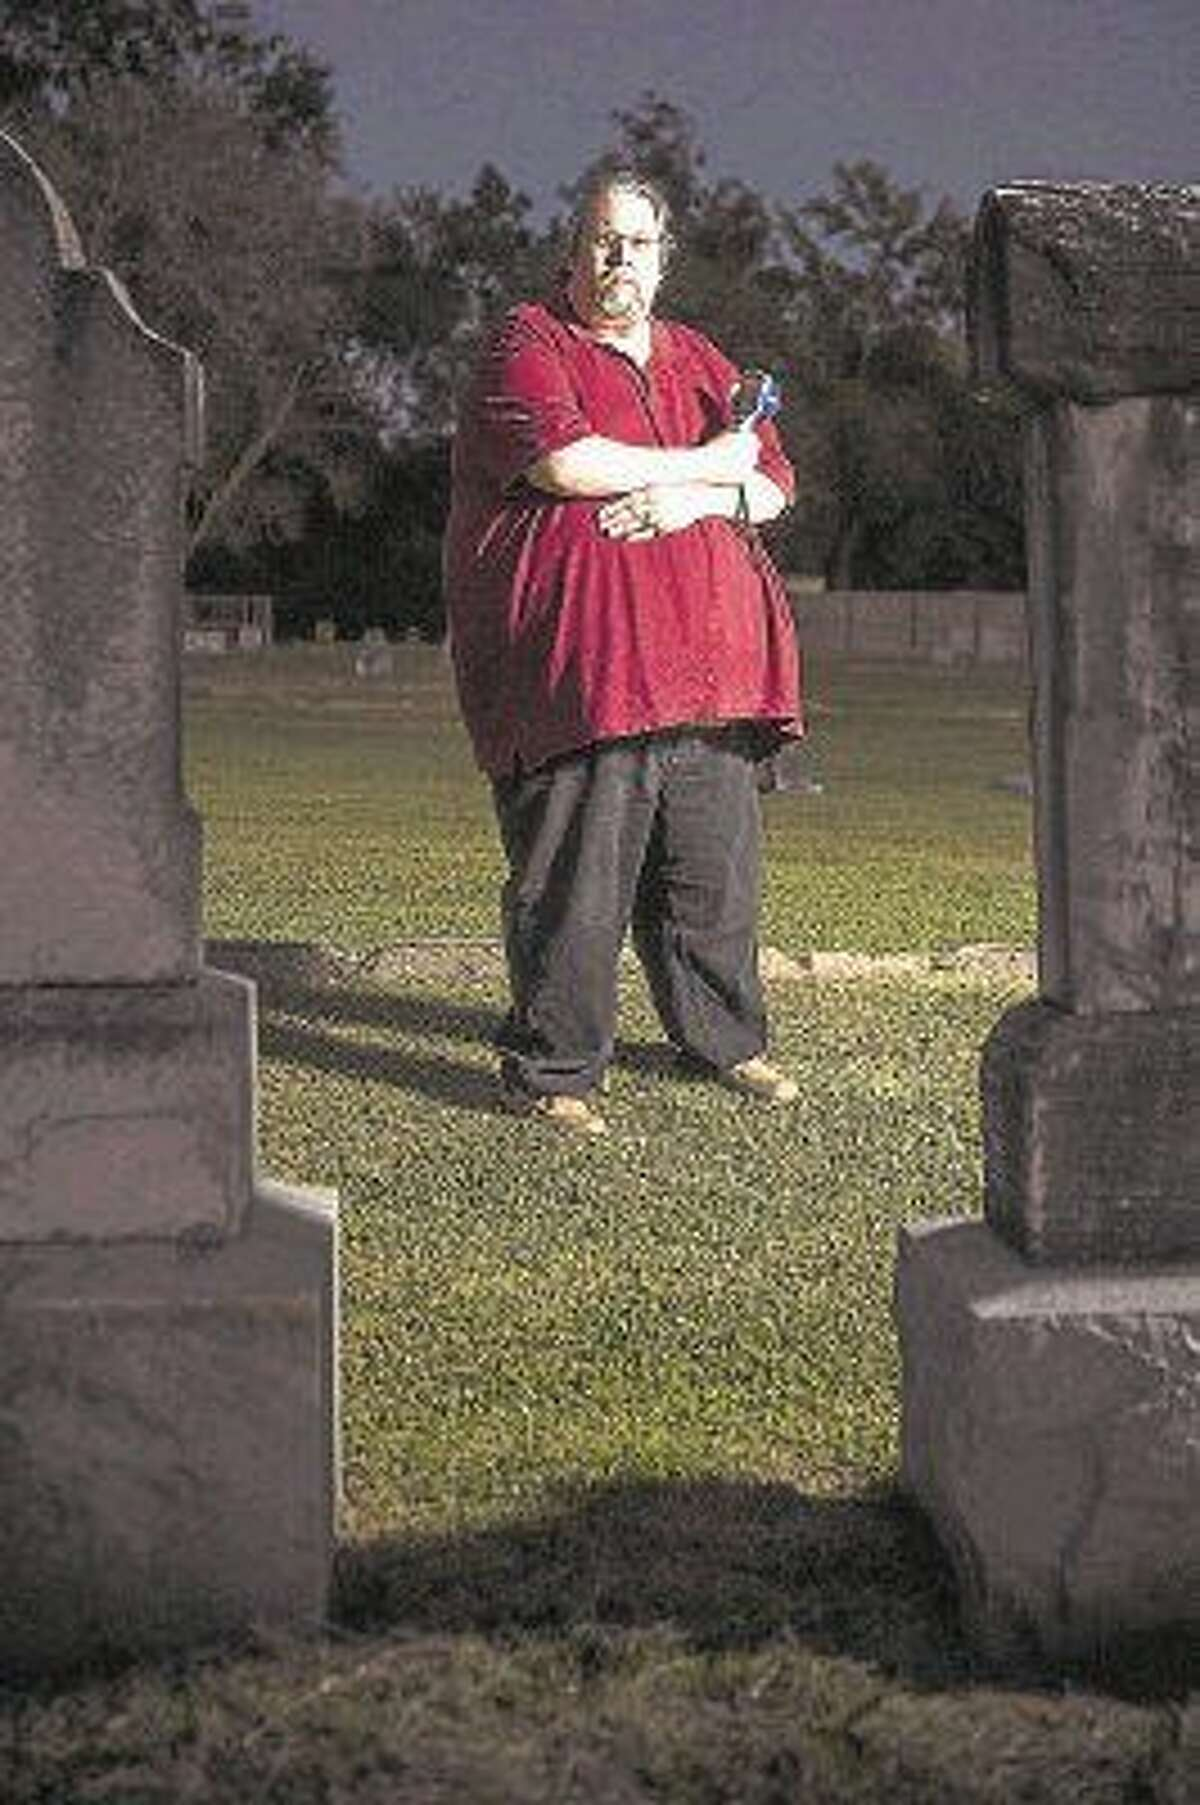 Lone Star Spirits president Pete Haviland poses for a portrait Oct. 24, 2014, at the Humble Cemetery.